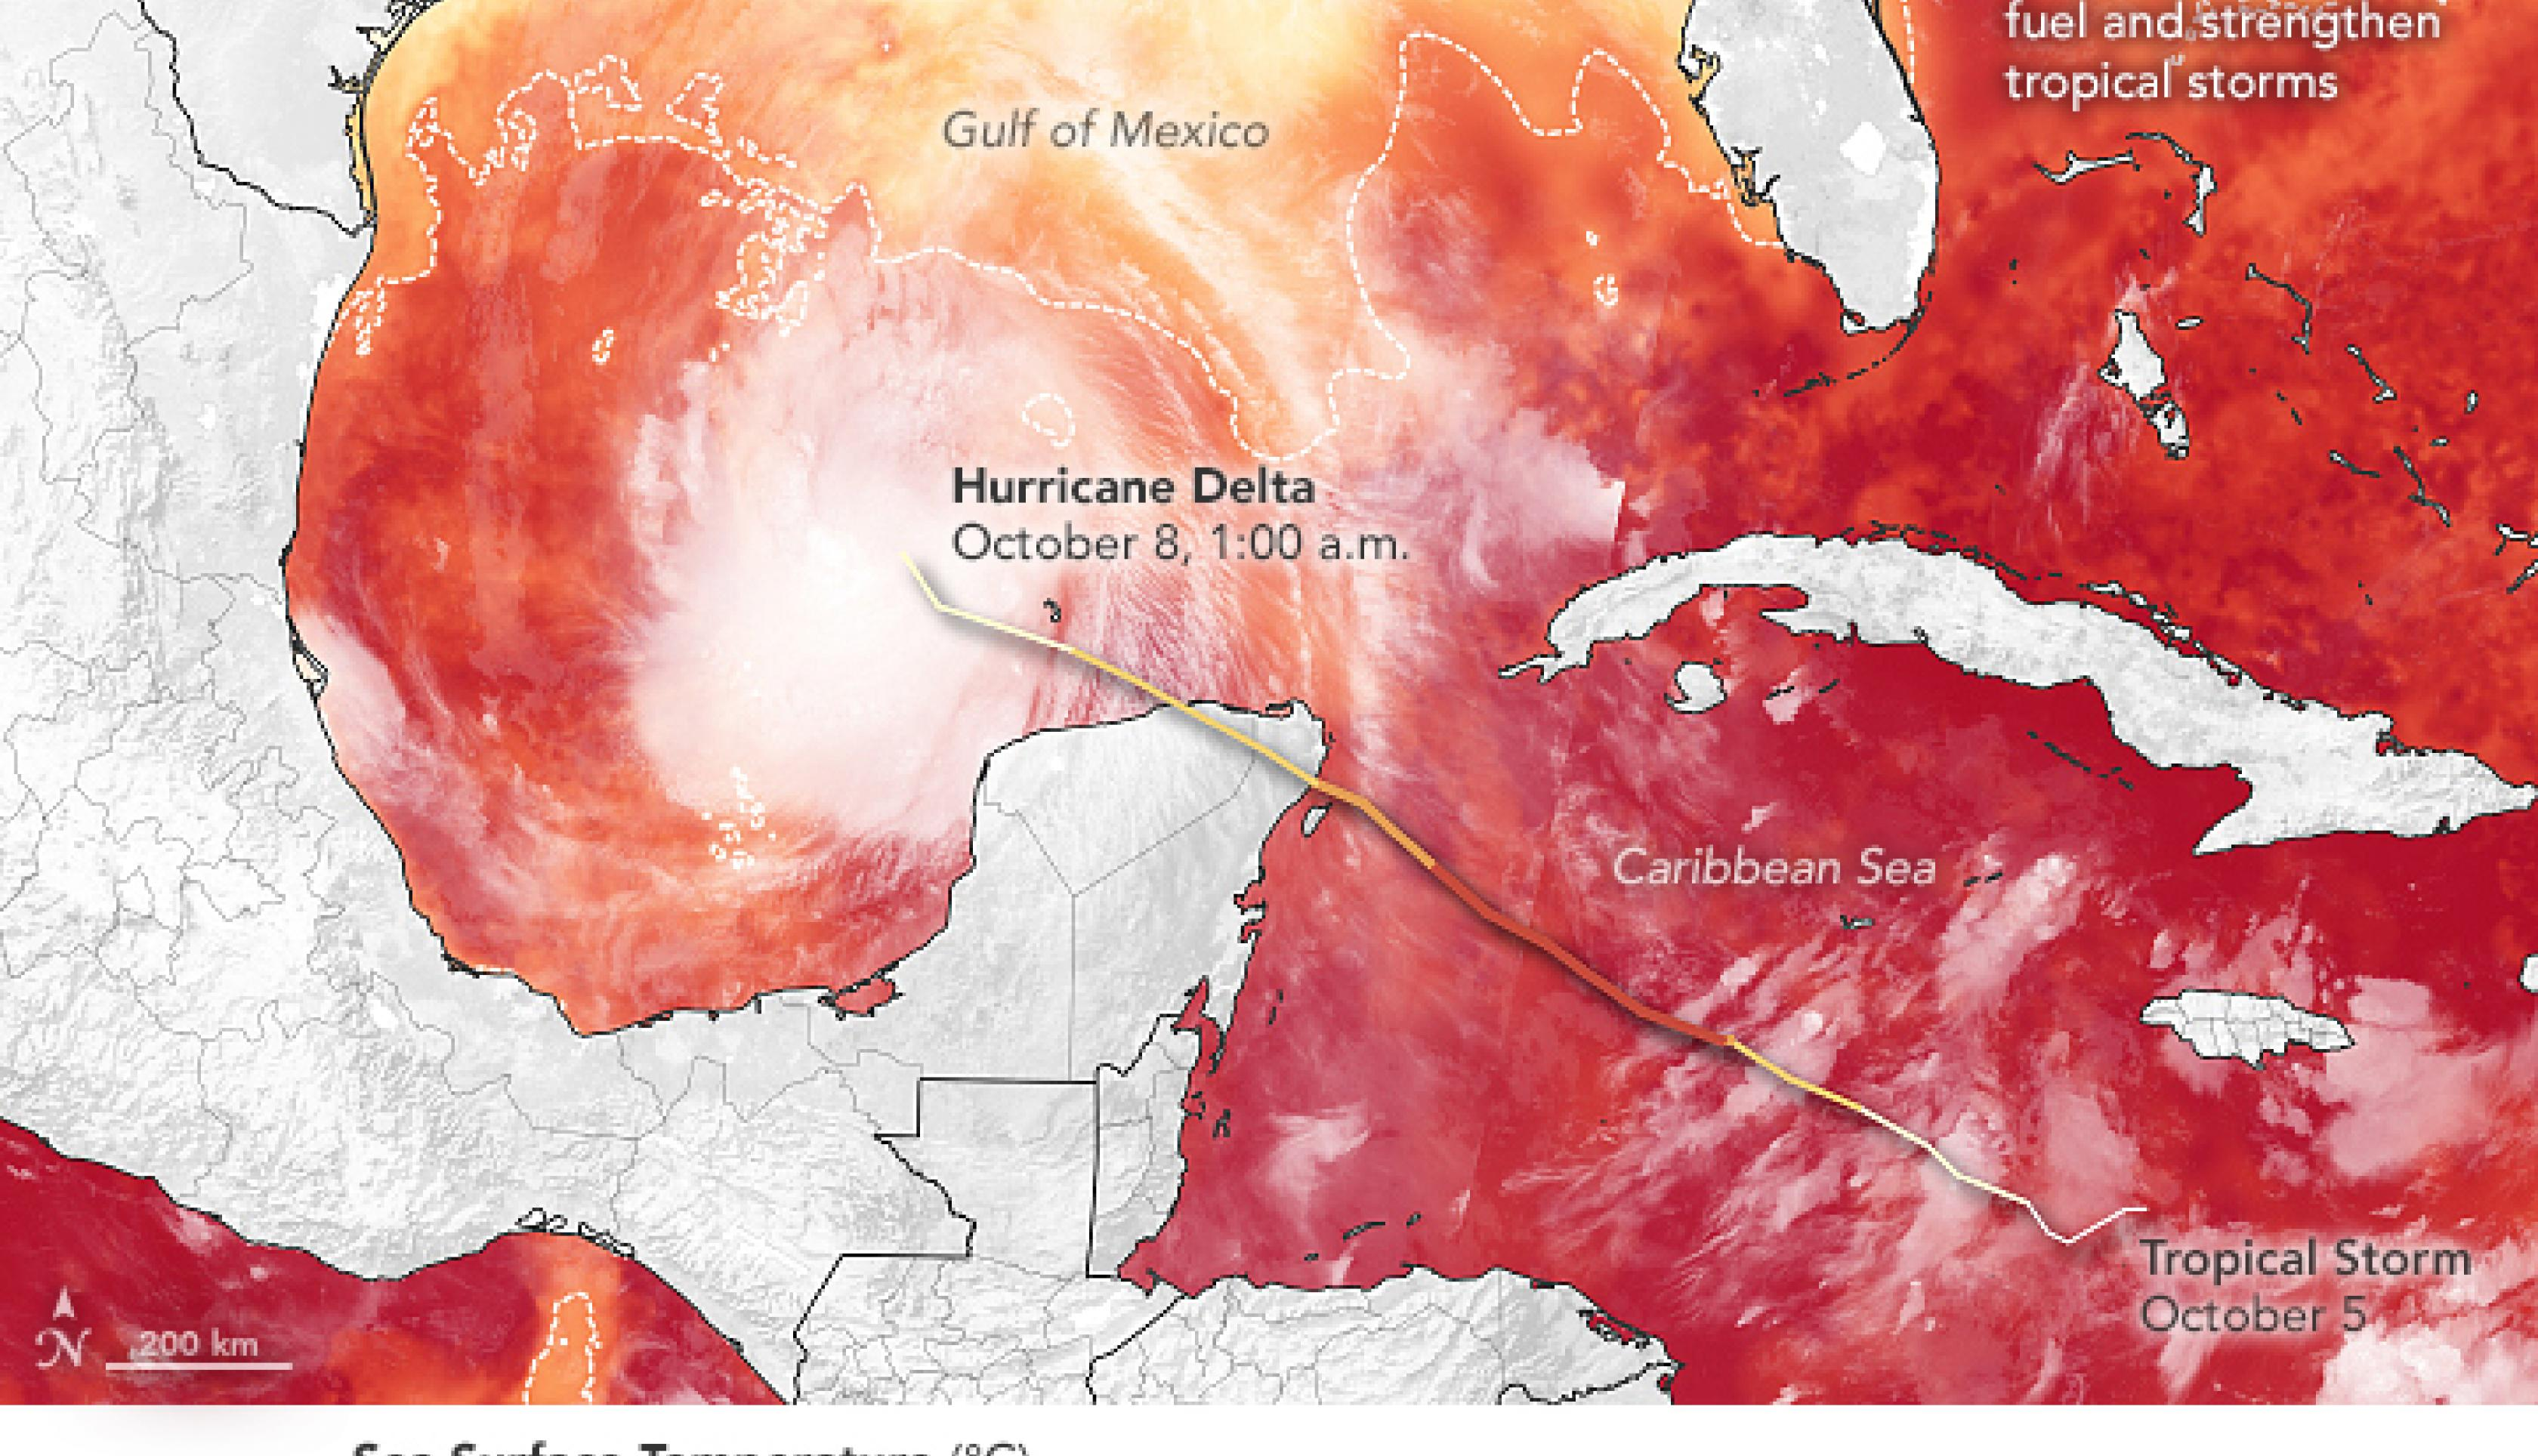 This map shows the track of Hurricane Delta between October 5 and October 8 overlaid on a map of sea surface temperatures (SSTs) in the Gulf of Mexico as measured on October 6, 2020. The SST data comes from the Multiscale Ultrahigh Resolution Sea Surface Temperature (MUR SST) project, based at NASA's Jet Propulsion Laboratory. MUR SST blends measurements of sea surface temperatures from multiple NASA, NOAA, and international satellites, as well as ship and buoy observations. The brightness temperature image